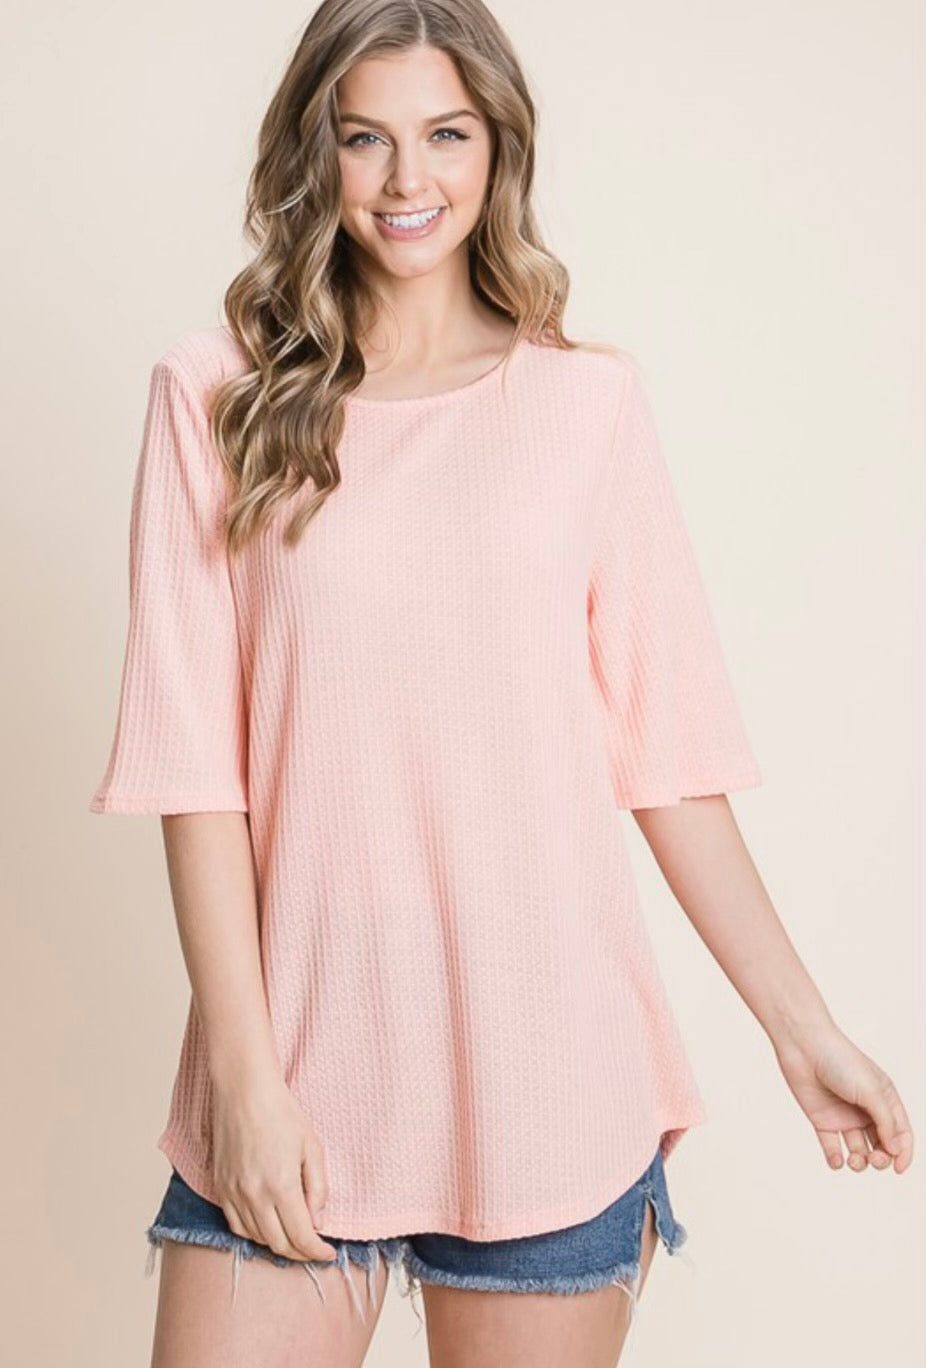 Total Flirt Short Sleeve- Blush